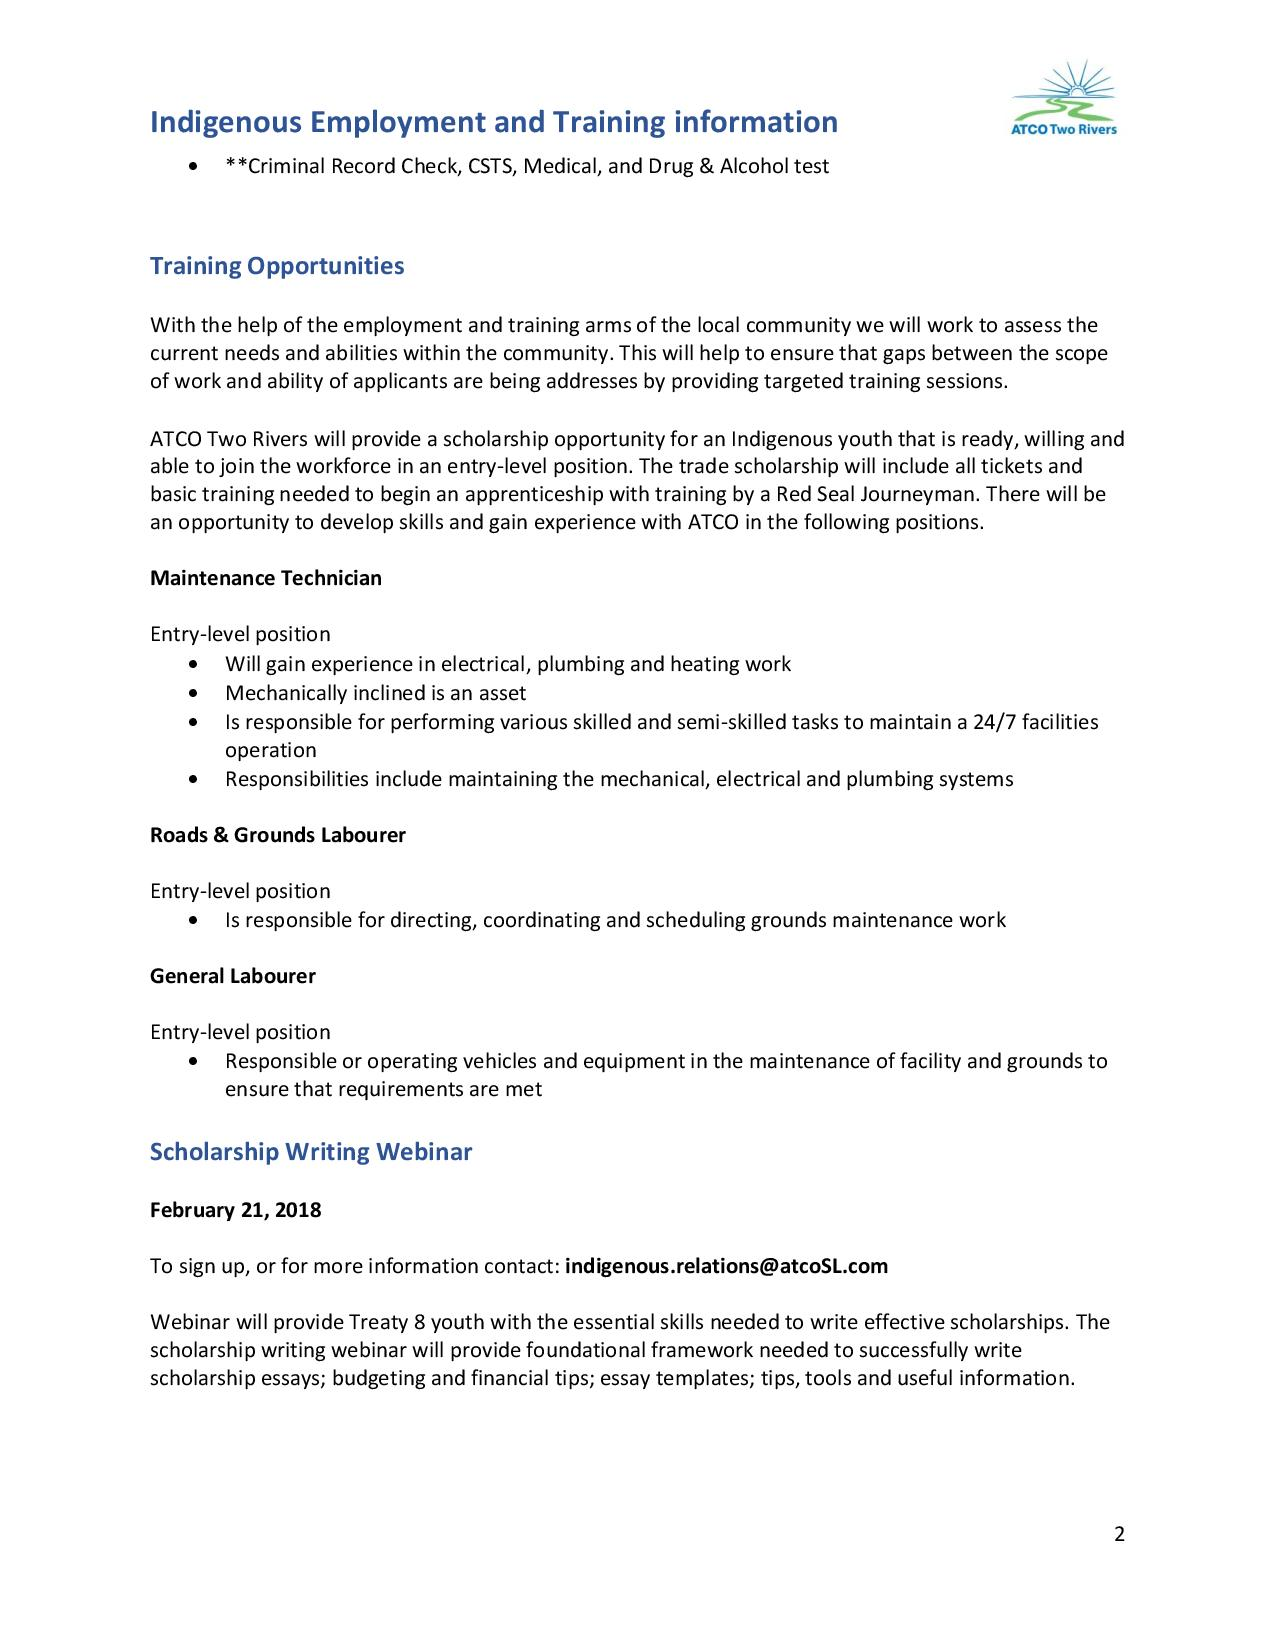 Site C employment opportunities package April 2018-page-006.jpg